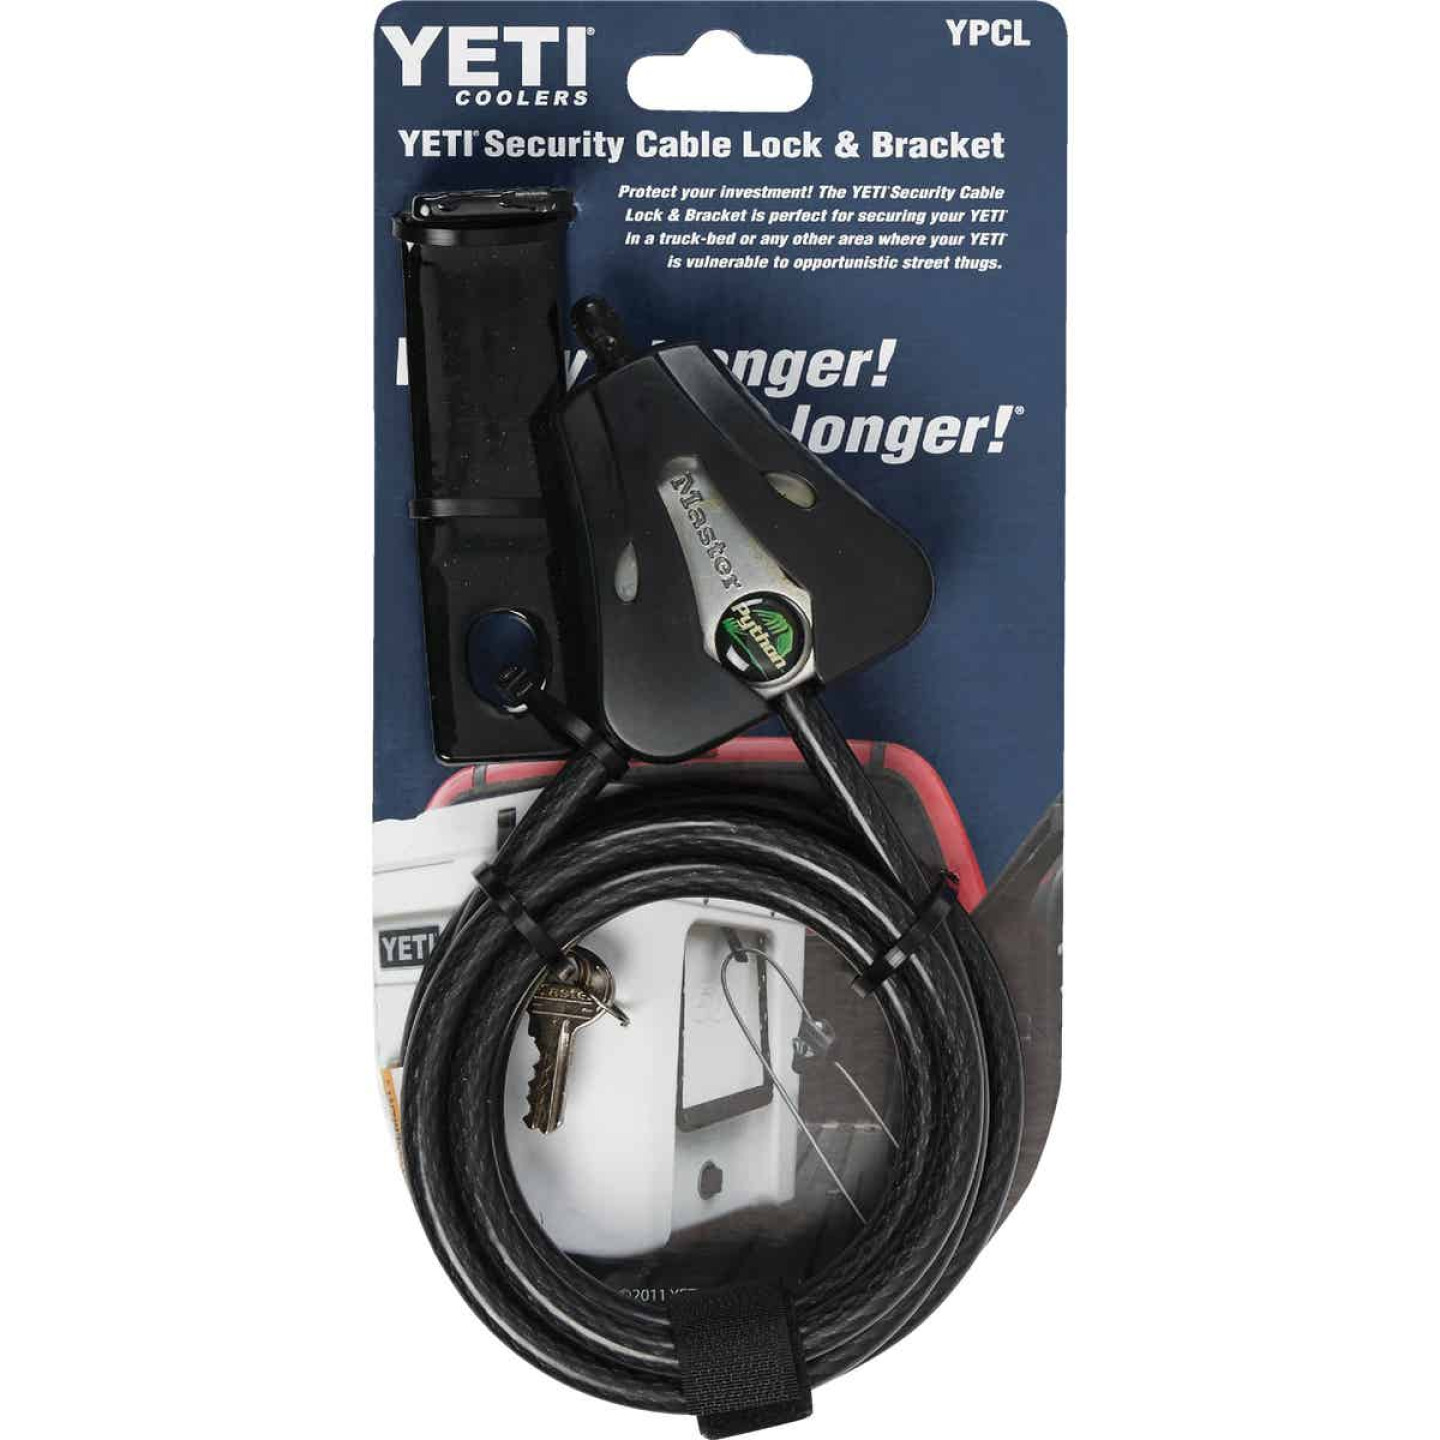 Yeti Carbon Steel 6 Ft. Security Cable Lock Image 3